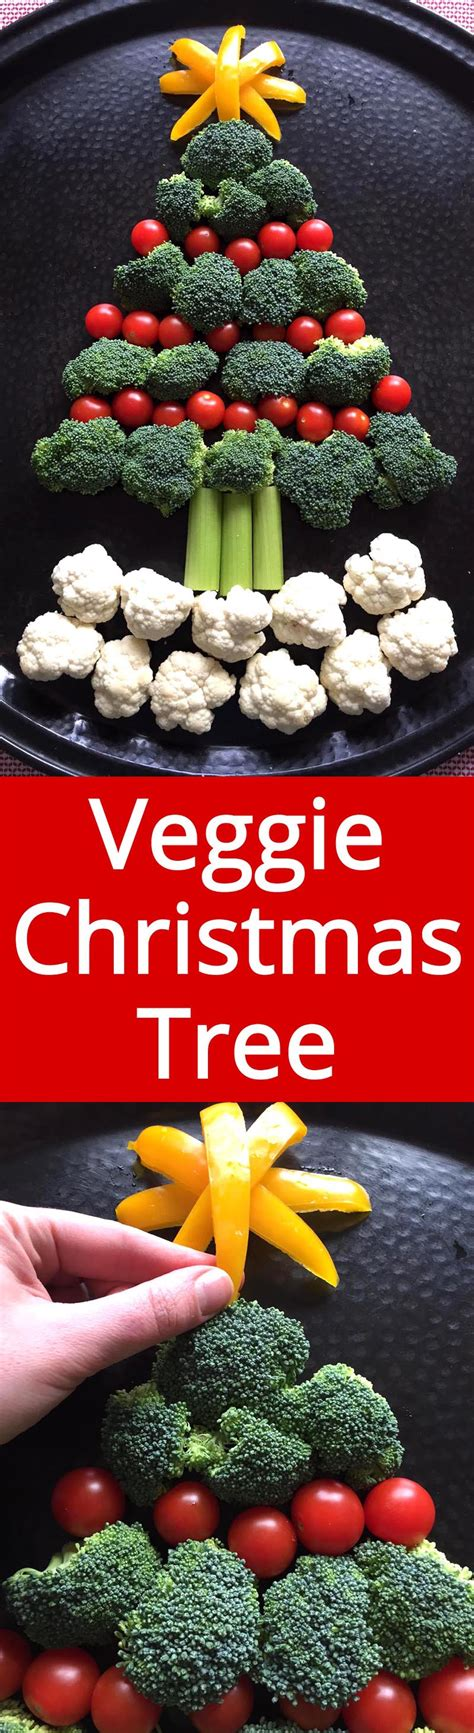 We are not going to be in large family groupings, with multiple she said that the best chance of getting as much normality over the christmas period as possible is for all of us to abide by these restrictions and all. Christmas Tree Shaped Vegetable Platter Appetizer Tray ...